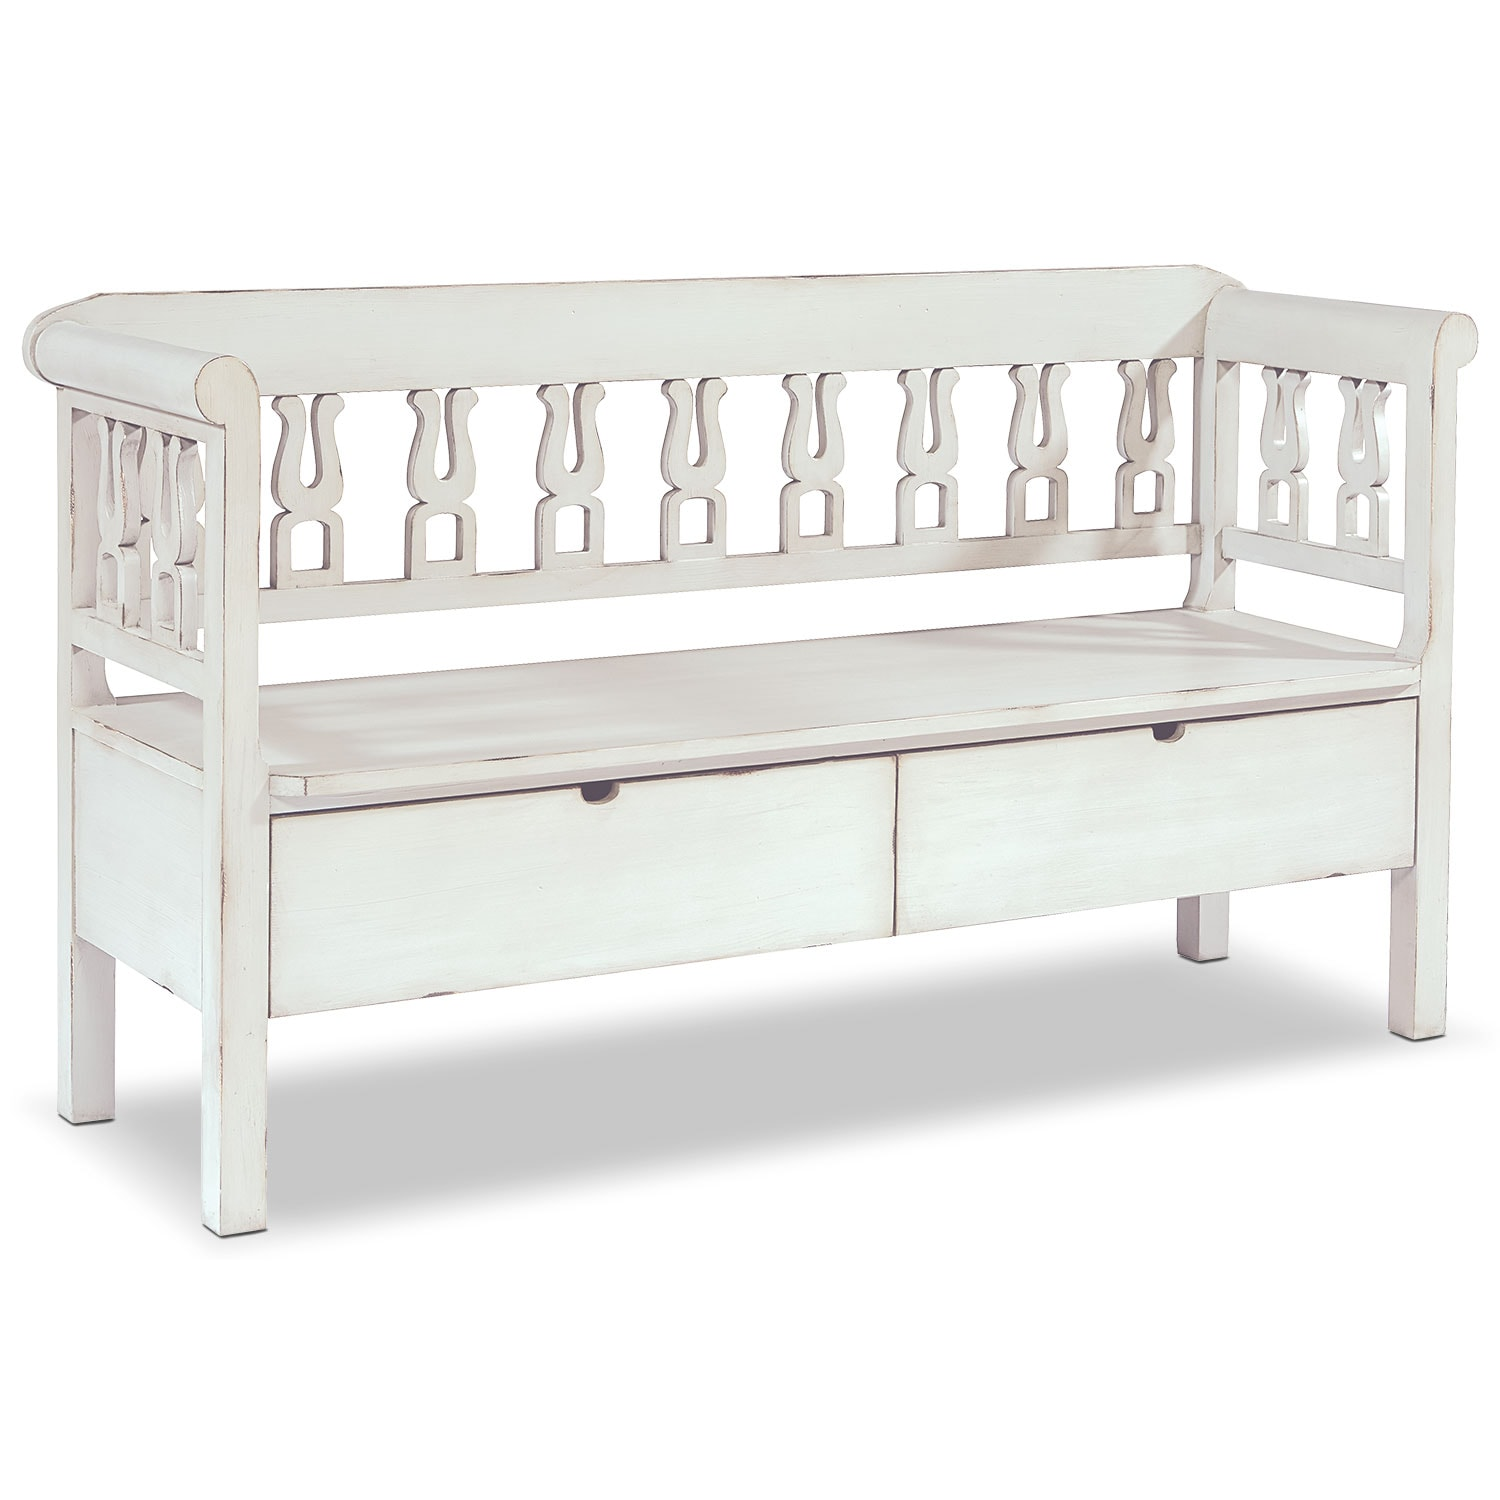 Accent and Occasional Furniture - Hall Bench with Storage - White